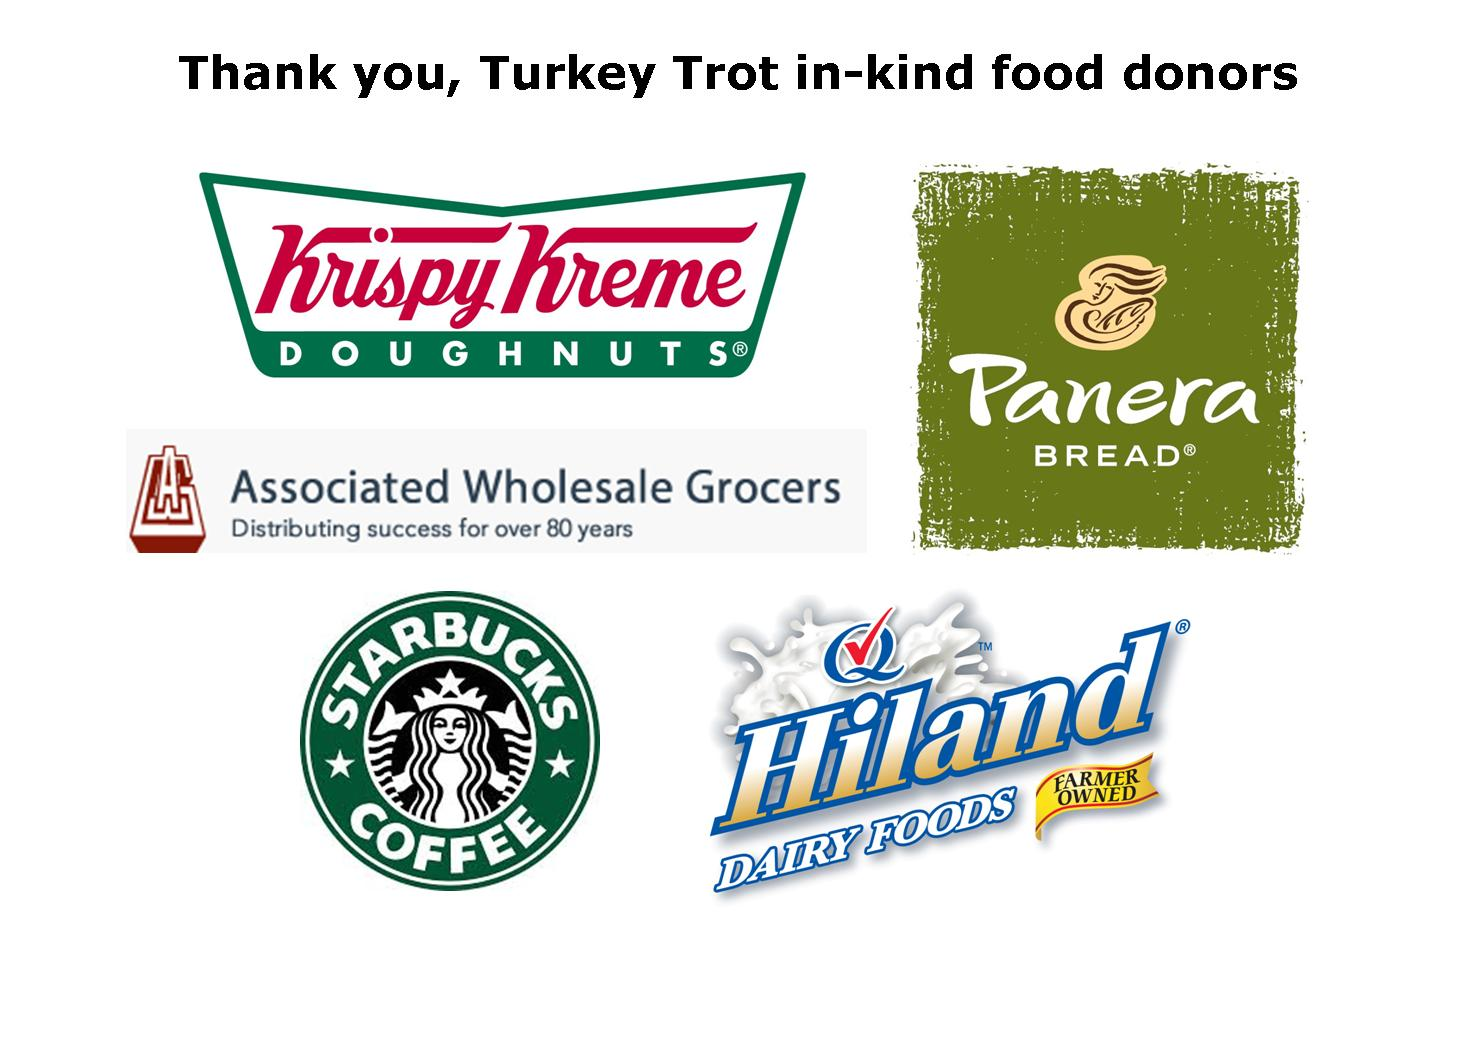 In-kind Food Donors